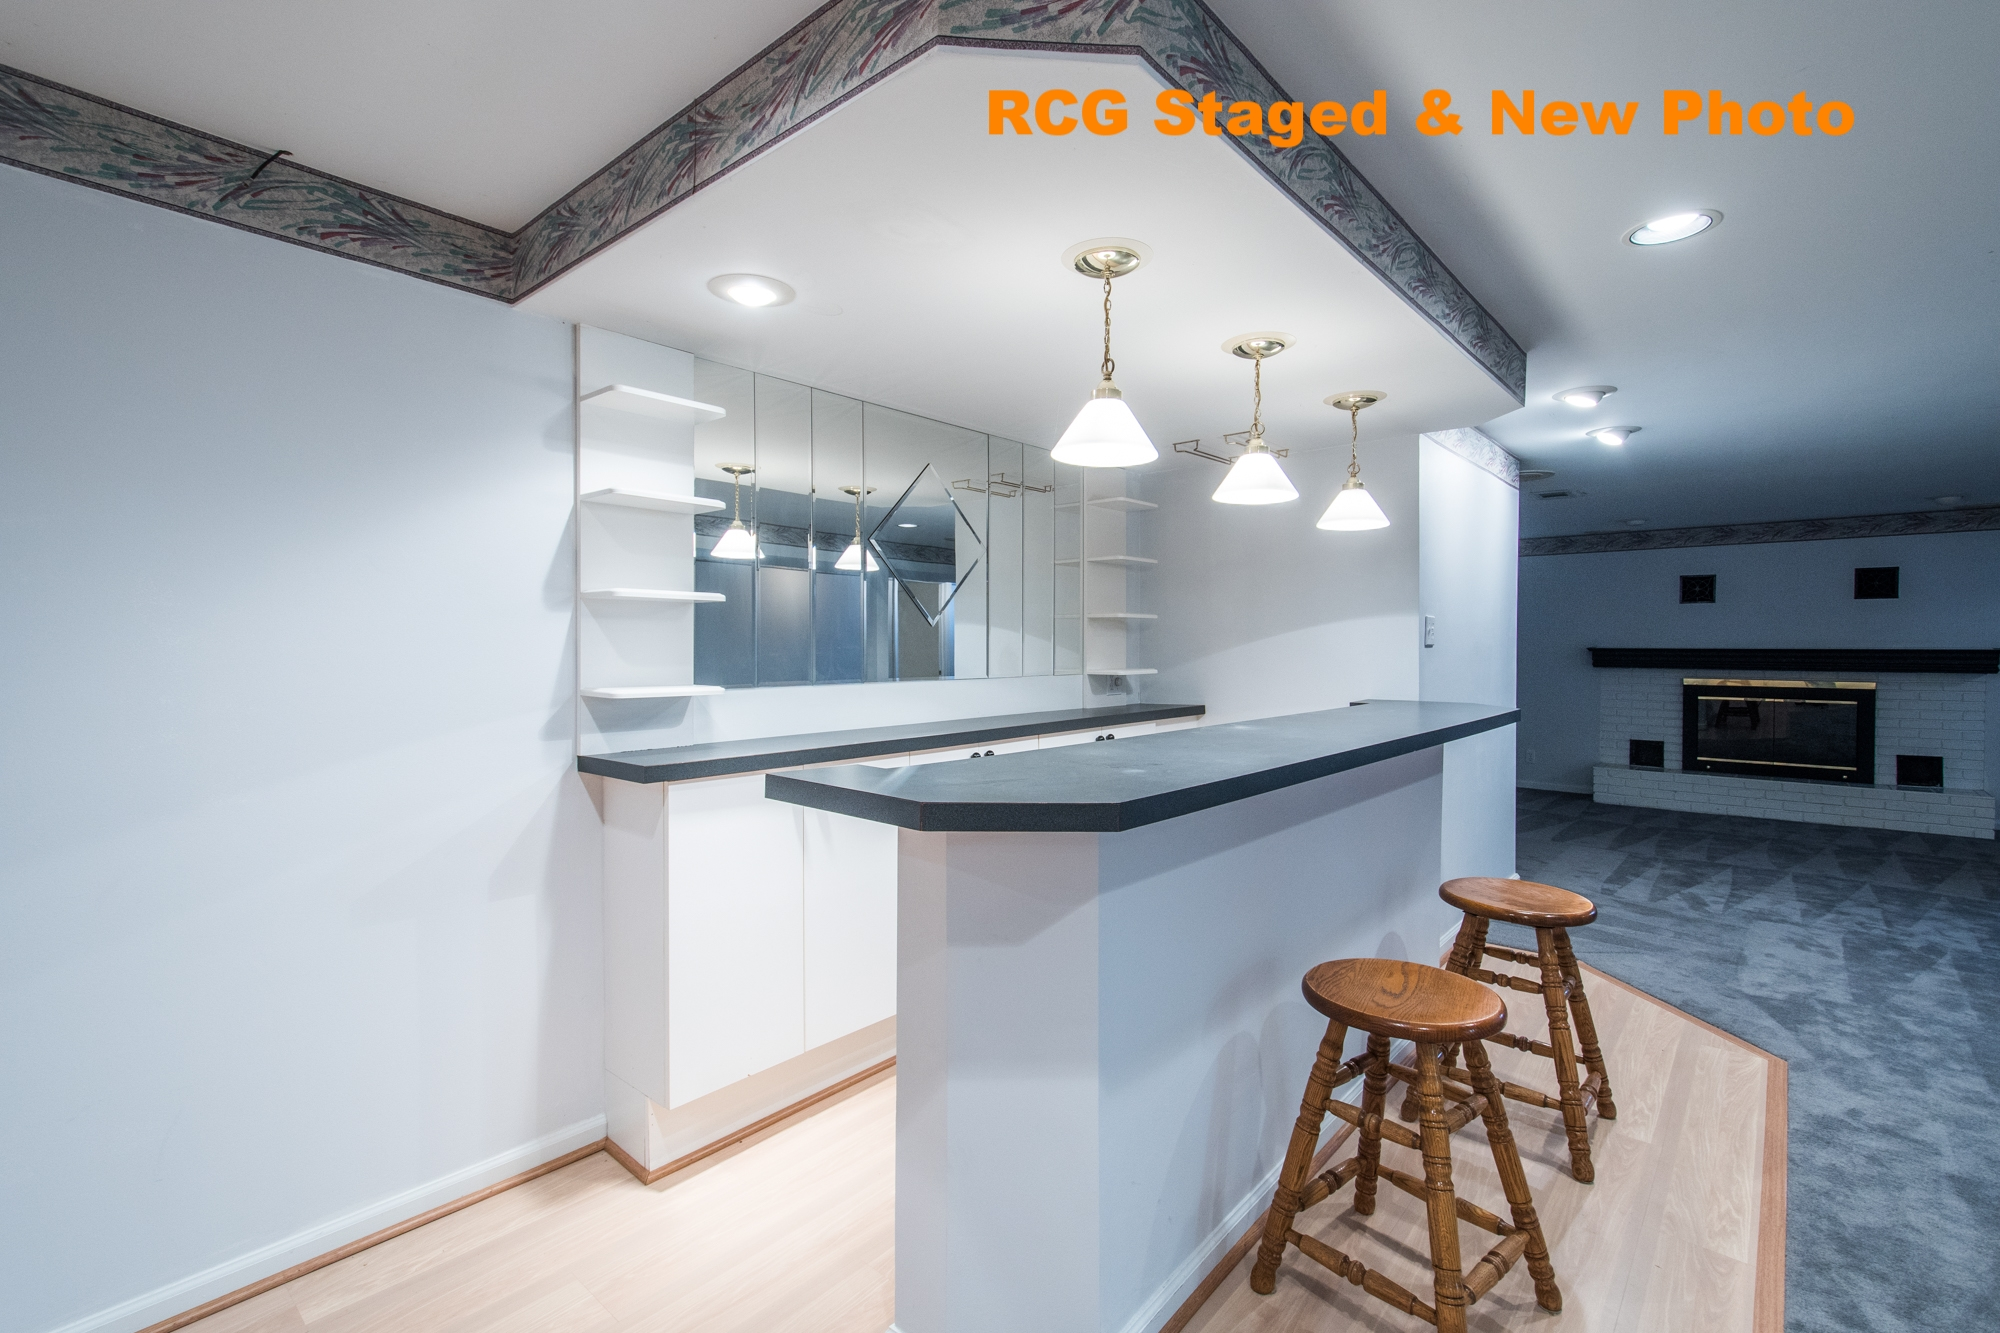 RCG Staged & New Photo